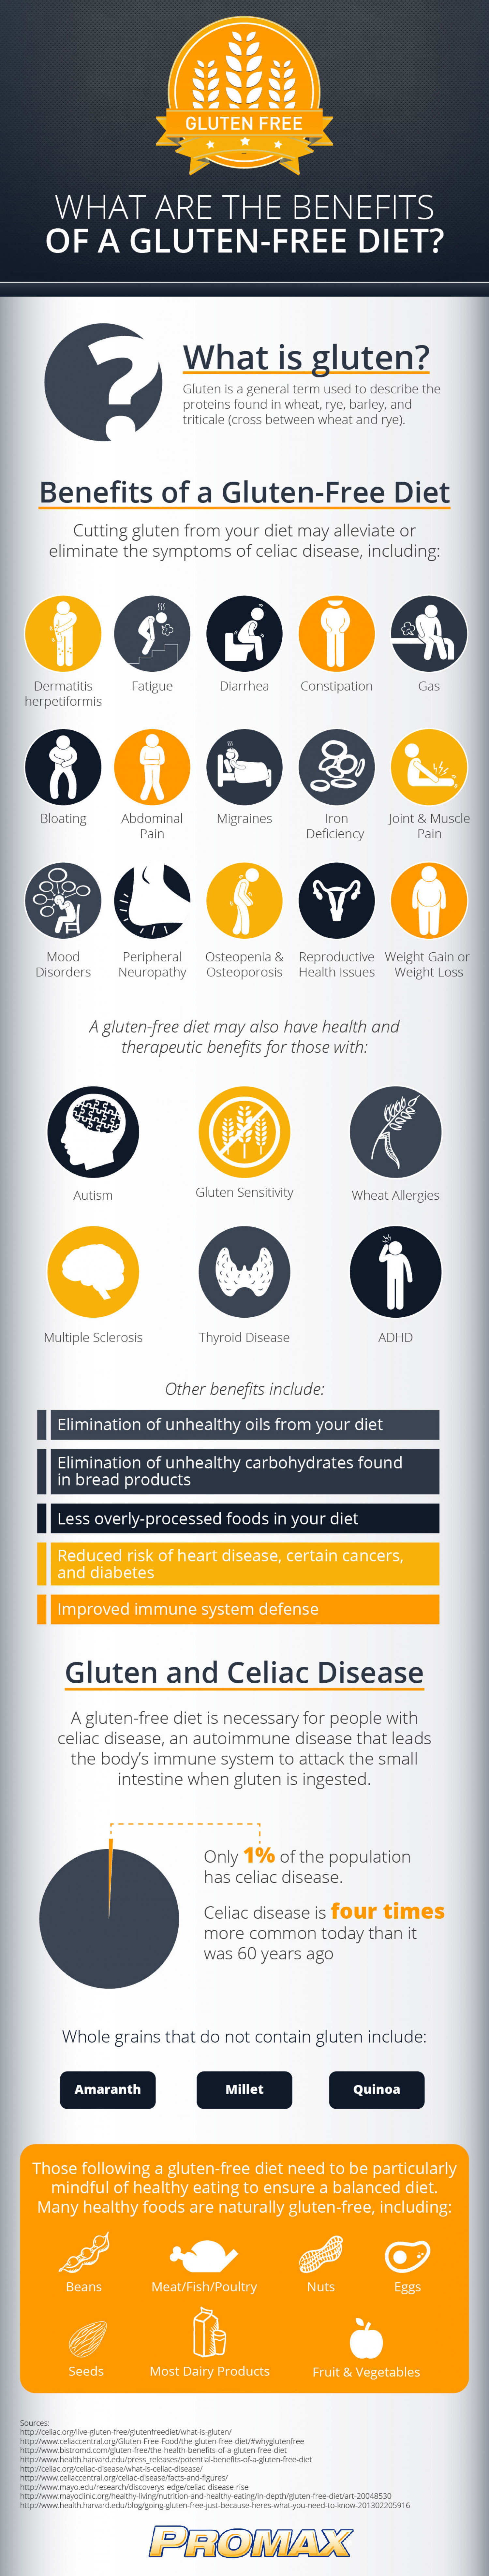 What Are the Benefits of a Gluten-Free Diet? Infographic